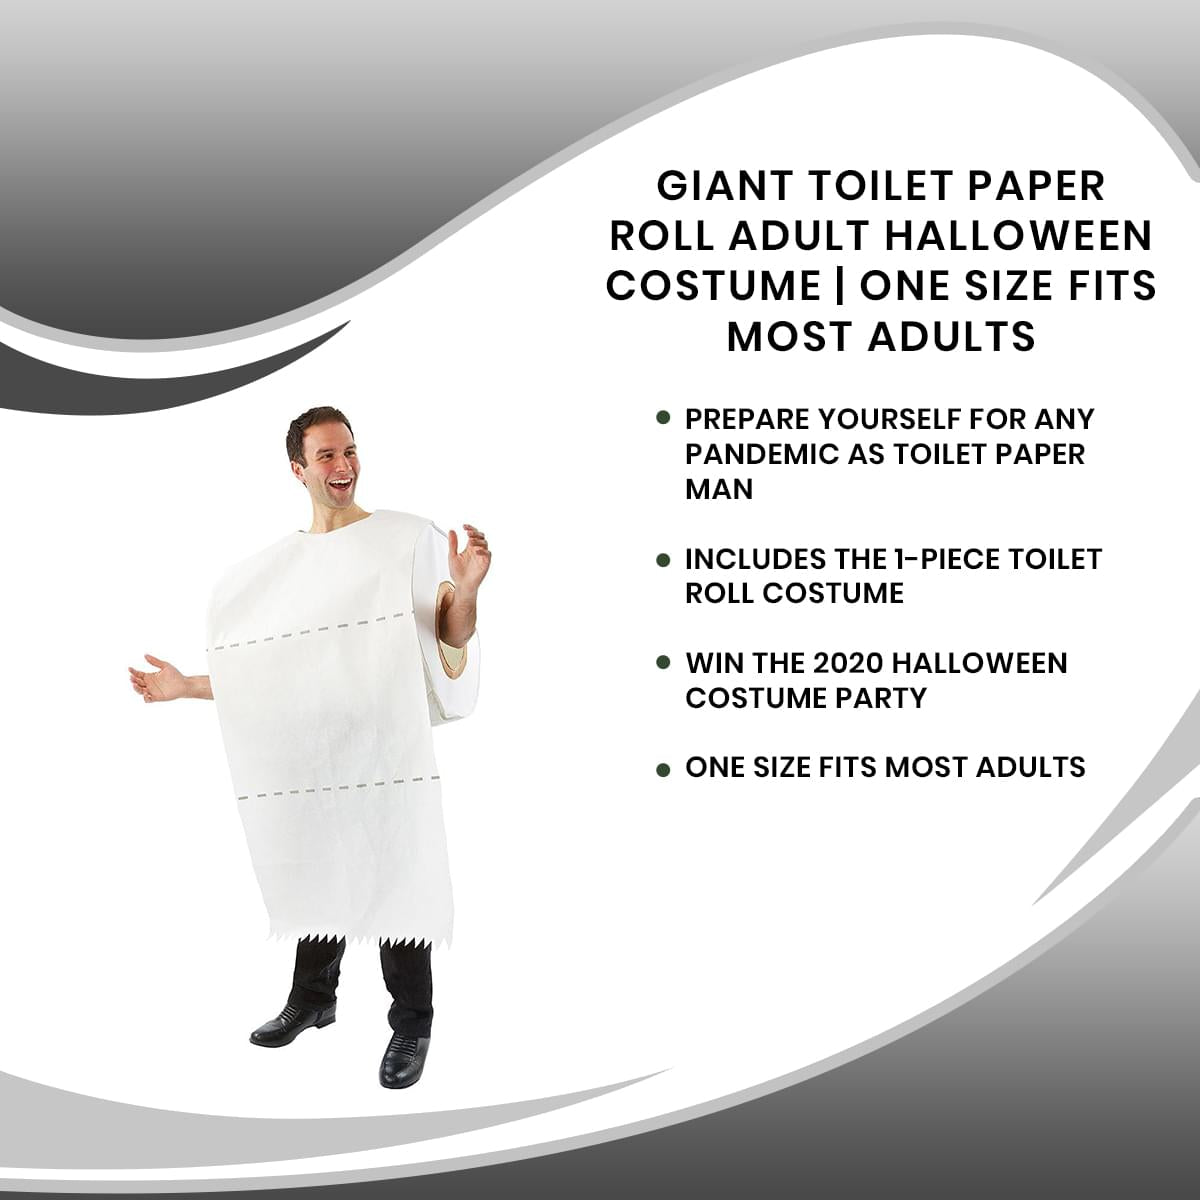 Giant Toilet Paper Roll Adult Halloween Costume | One Size Fits Most Adults